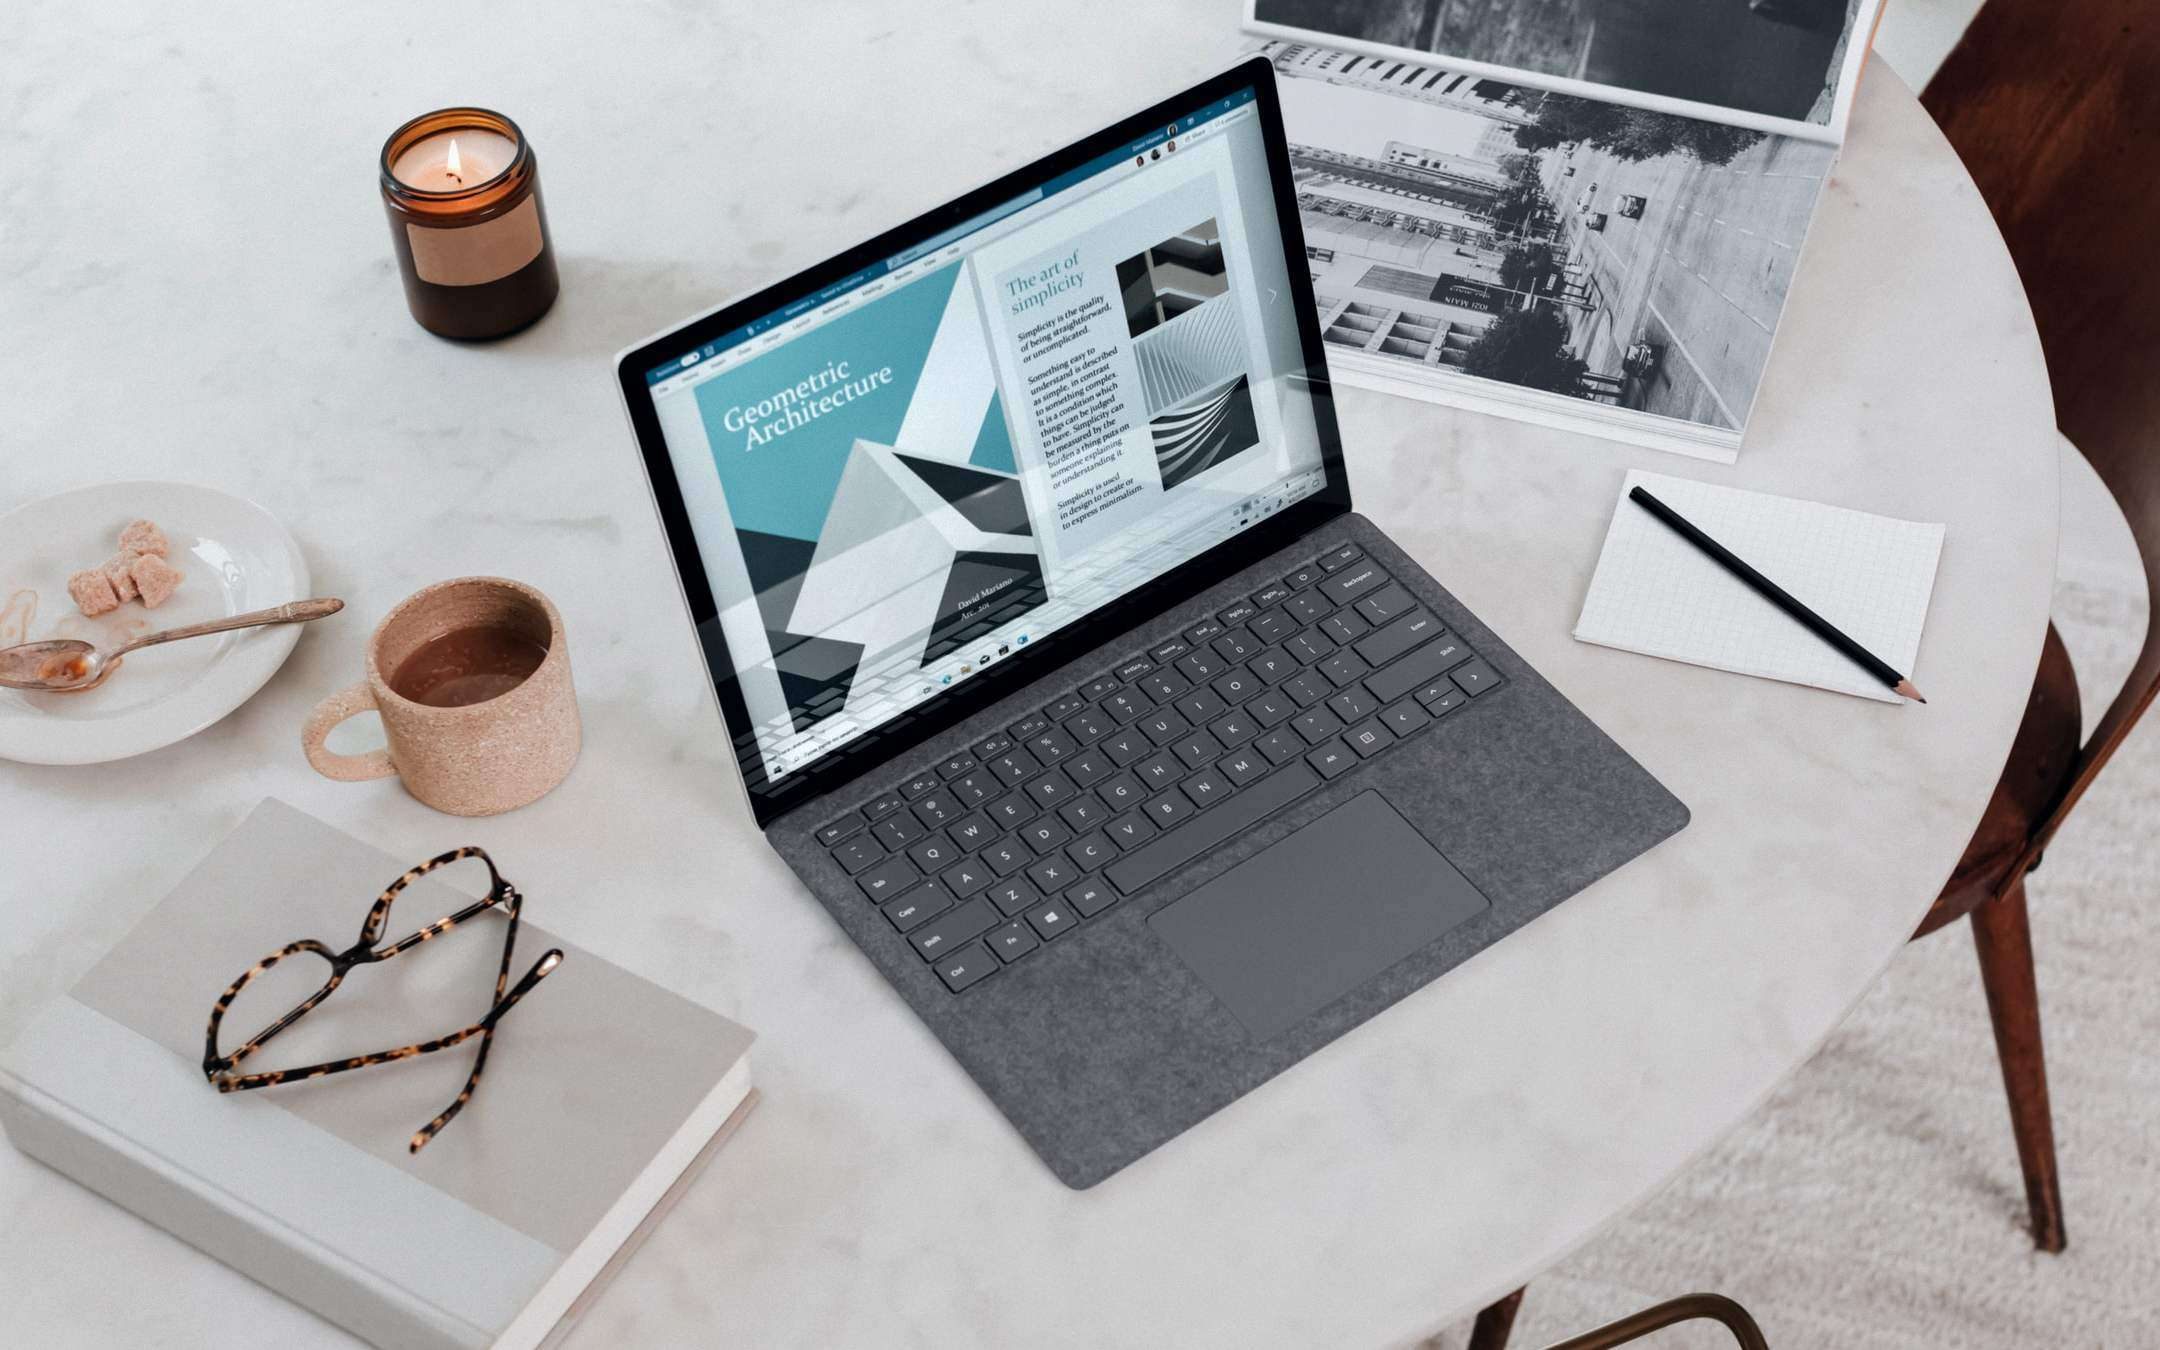 Notebook with LTE chip, increased deliveries in 2020